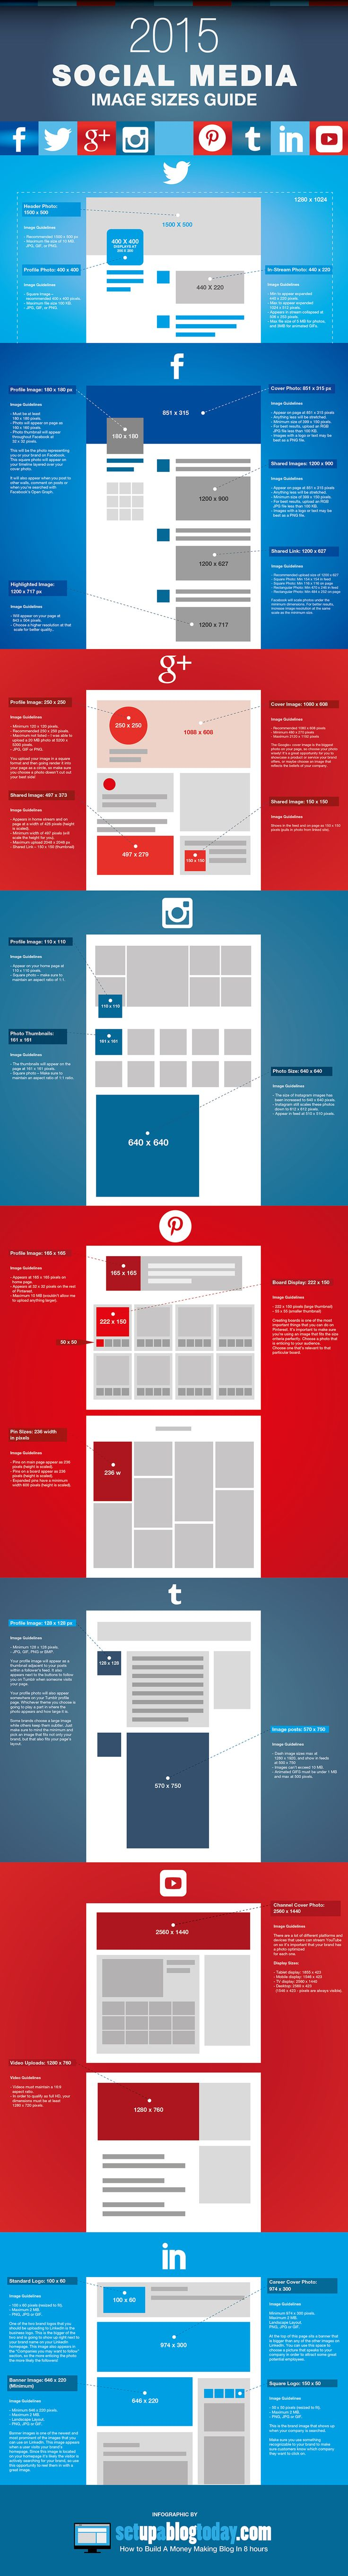 From Facebook to Google+, this ‪#‎socialmedia‬ image size guide gives you the exact dimensions for the top 8 social networks! PLUS best practices and strategies. via http://rebekahradice.com/social-media-image-sizes/